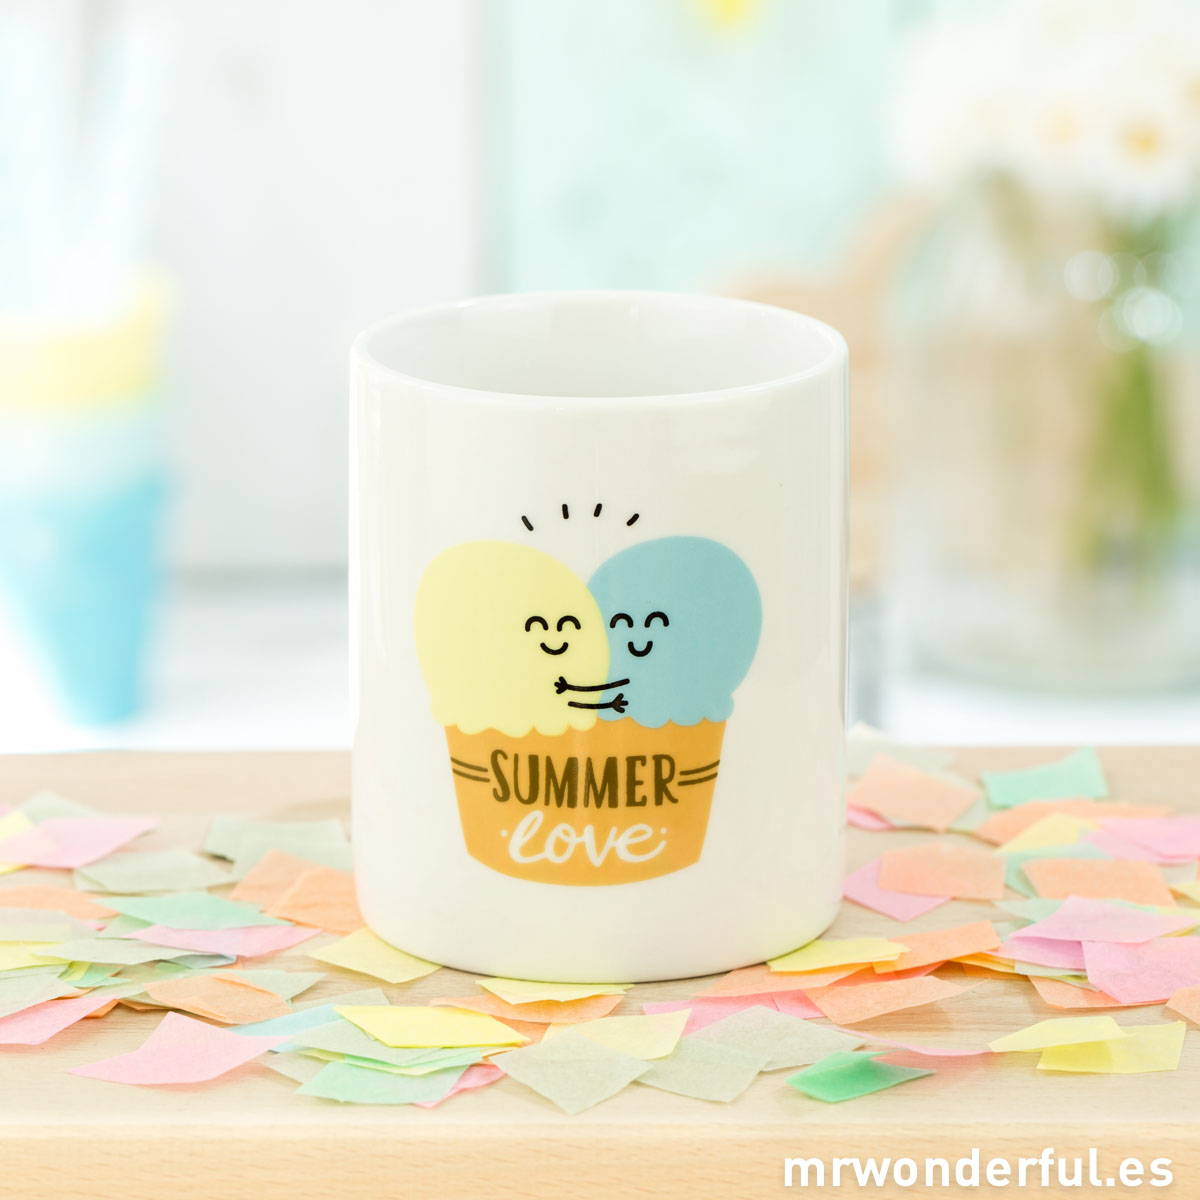 Mrwonderful_WON95_summer-love-10